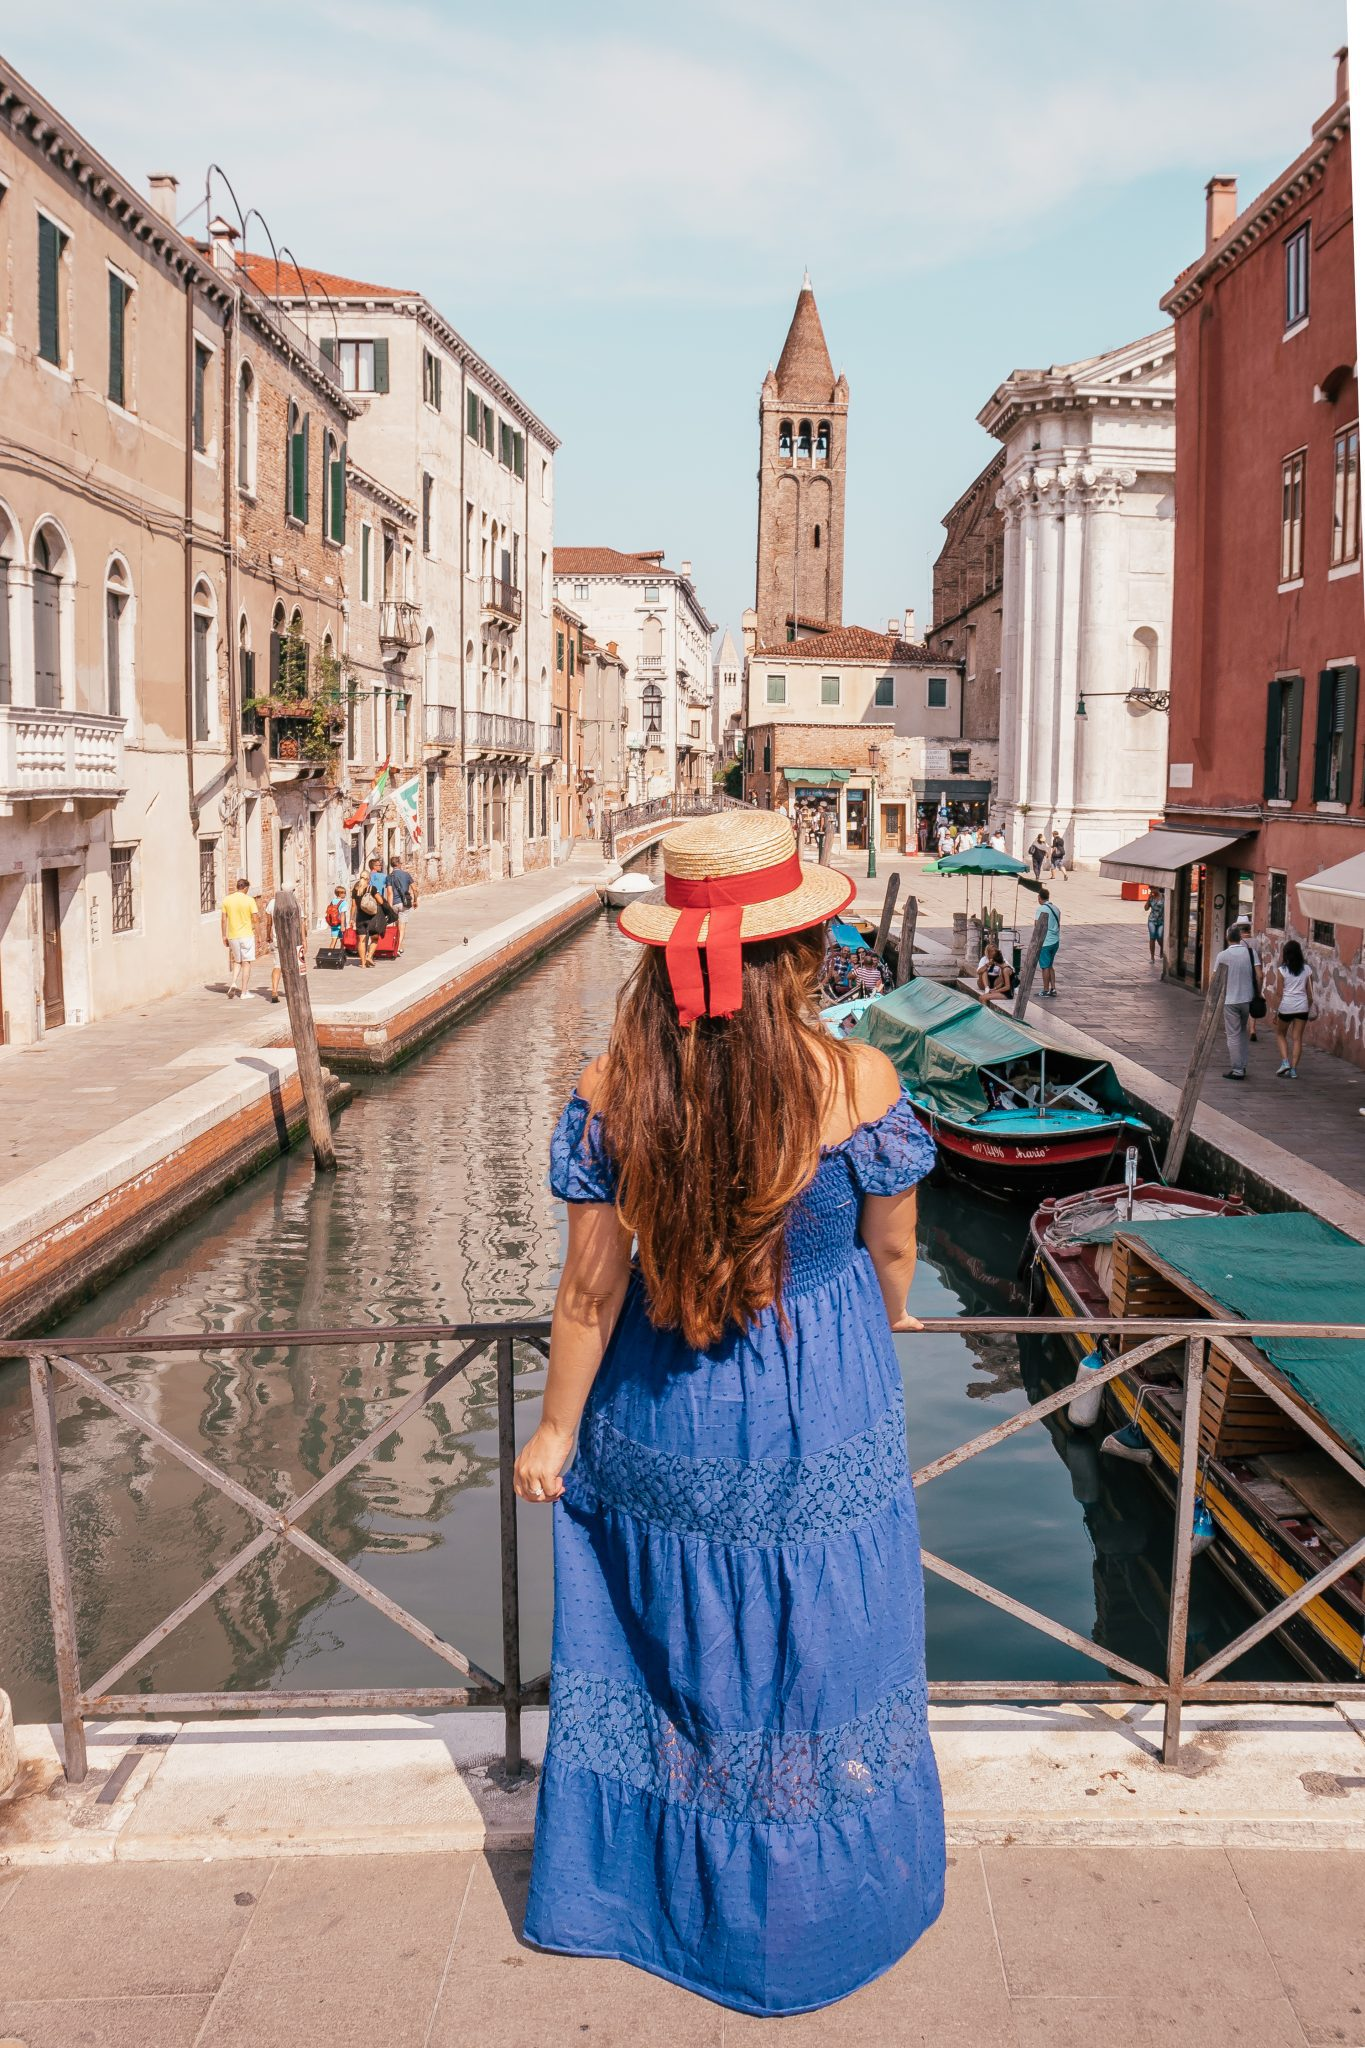 Most Instagrammable Places In Venice - Murano